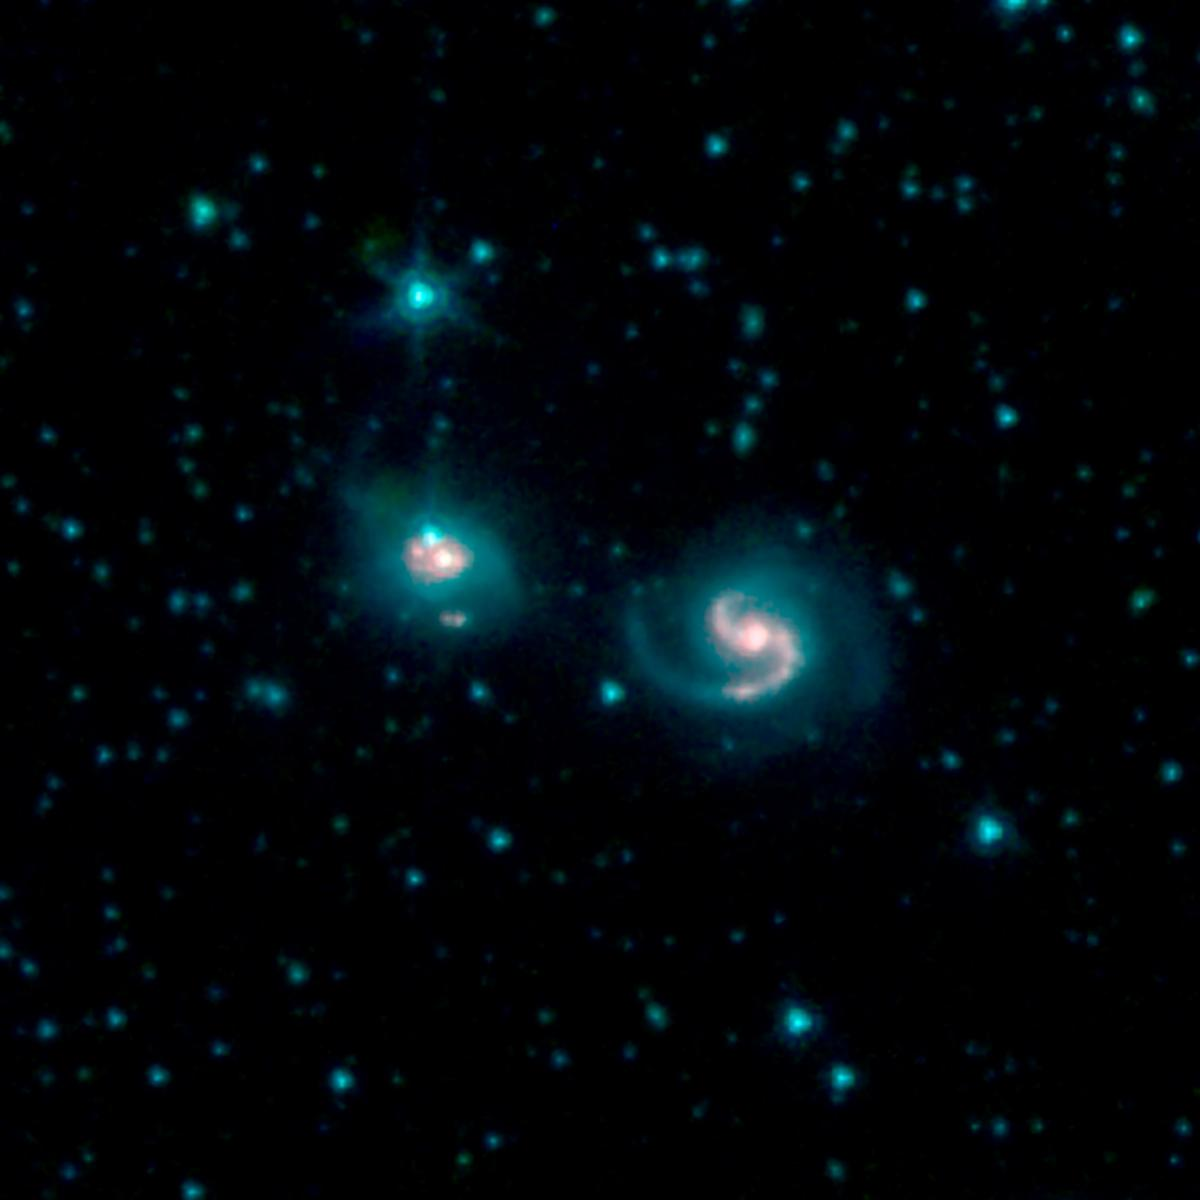 This image, by NASAs Spitzer Space Telescope, shows the merger of two galaxies, known as NGC 6786 (right) and UGC 11415 (left), also collectively called VII Zw 96.